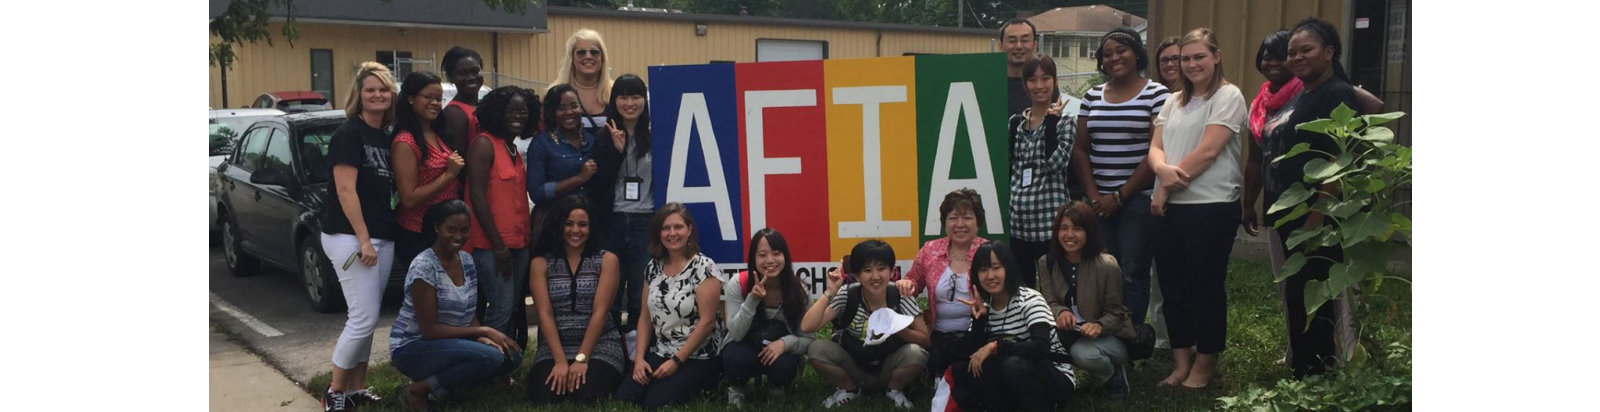 new banner afia staff picture 2015